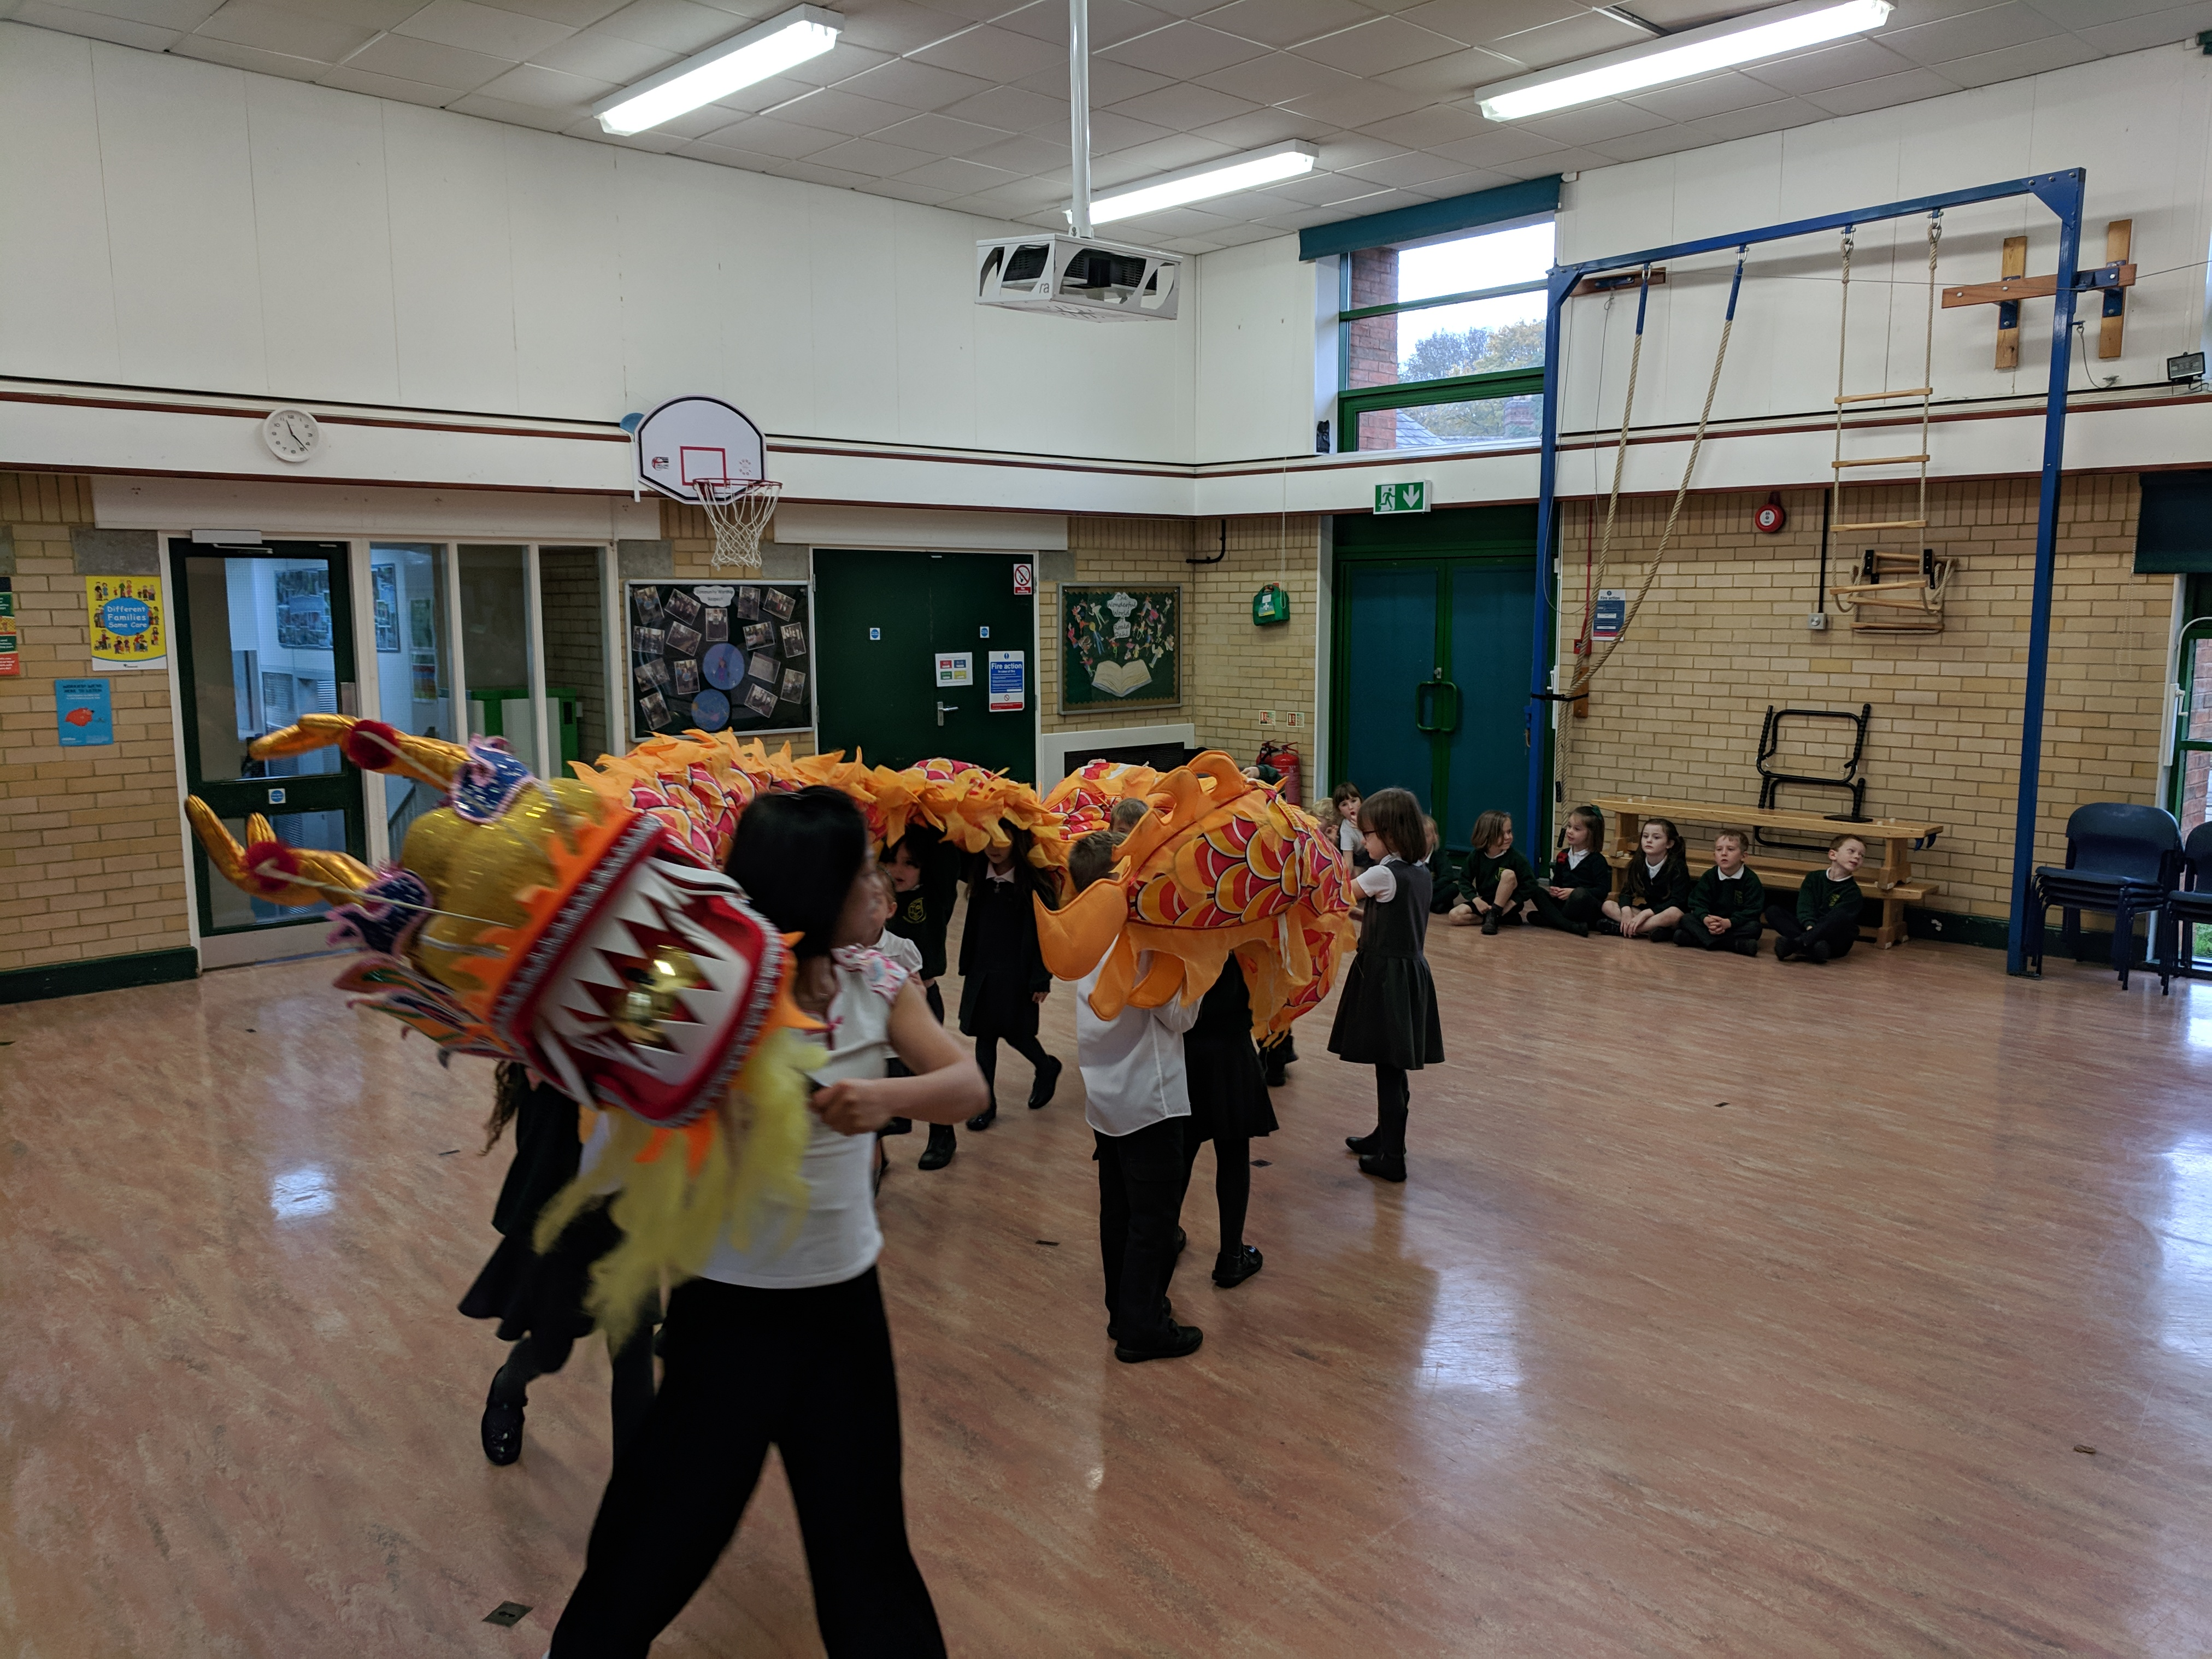 School children dancing in hall with chinese dragon